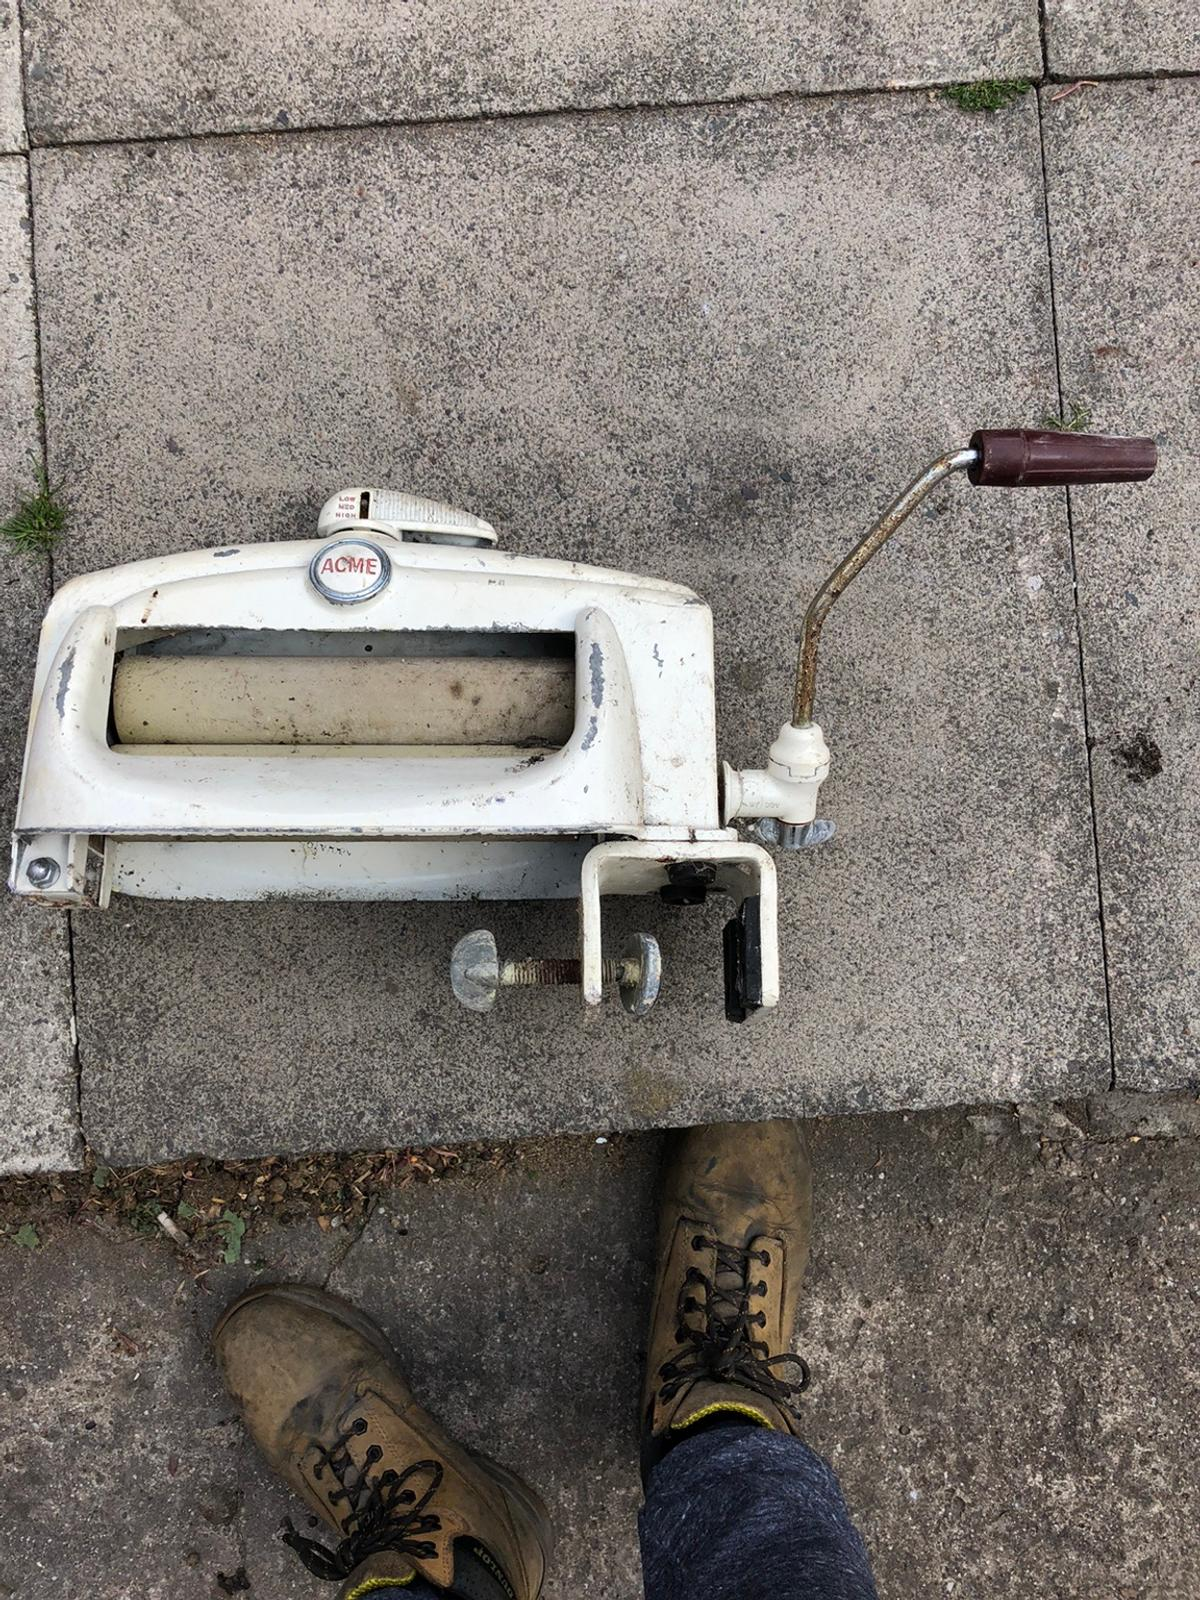 Wringer with no stand it's 60-70 years old. Any questions please ask. Sold online for £80 with stand. Mines without but collection is preferred.